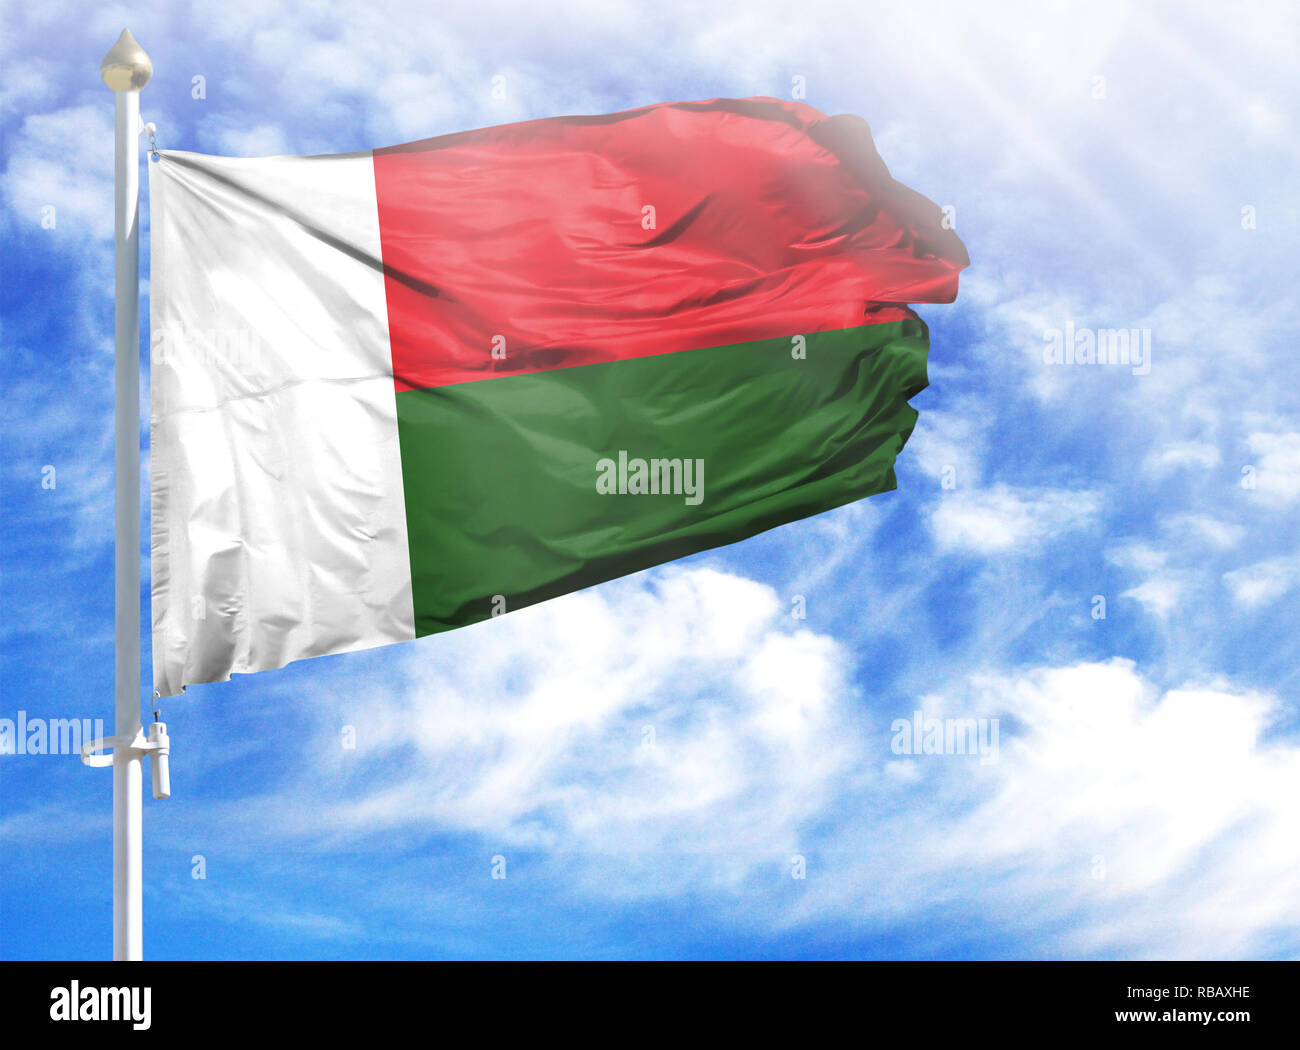 National flag of Madagascar on a flagpole in front of blue sky. - Stock Image